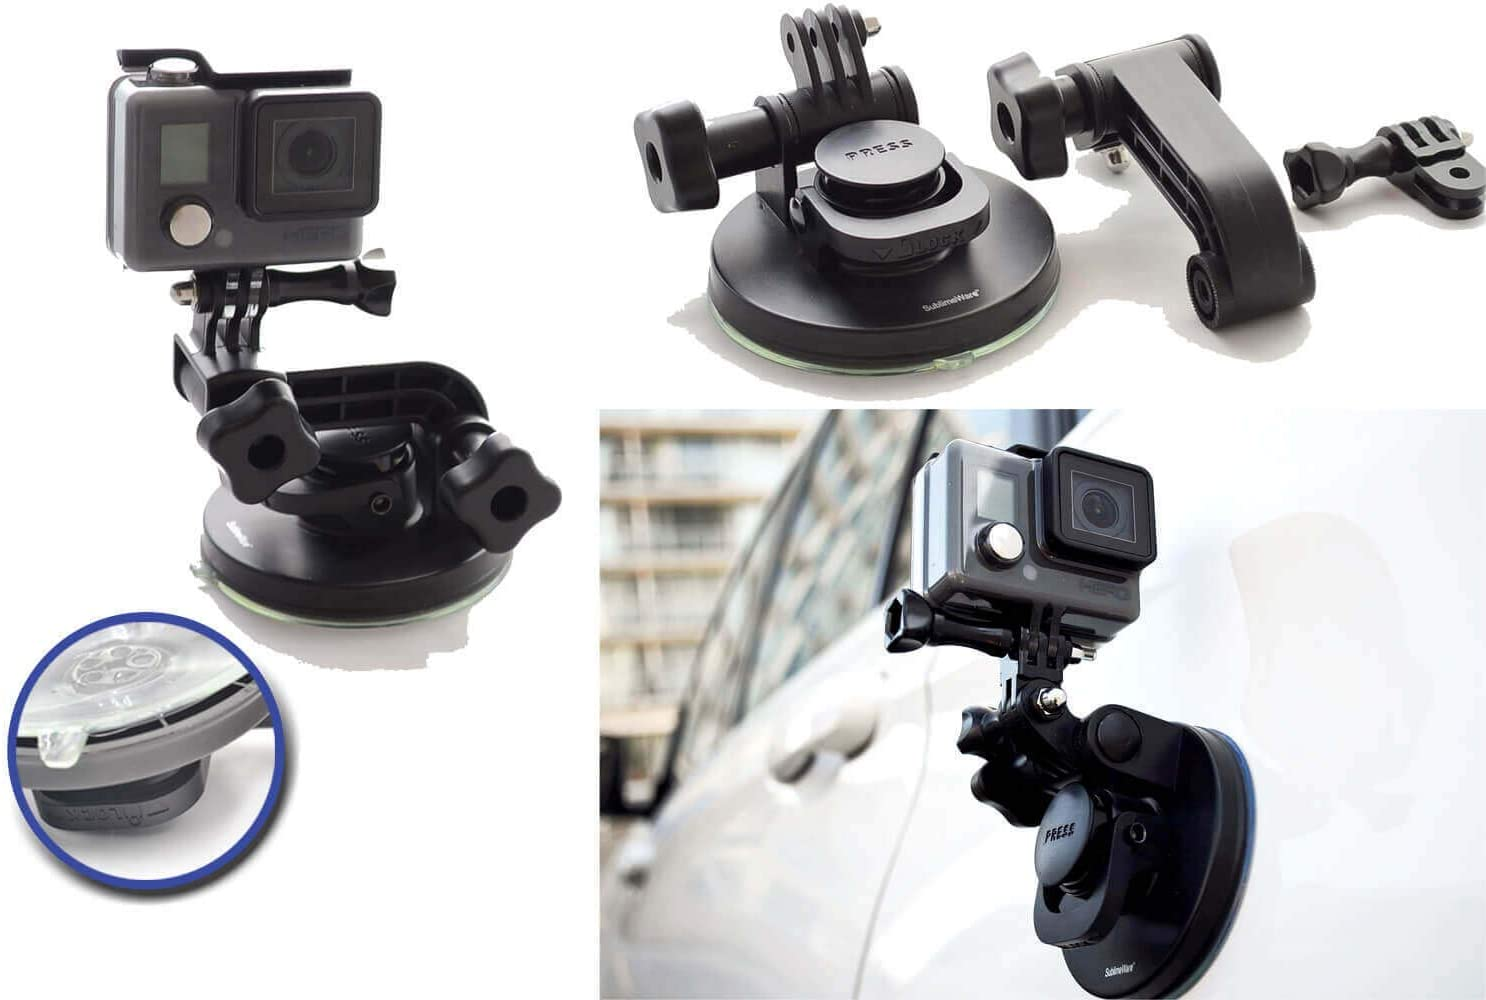 SublimeWare GoPro Mount